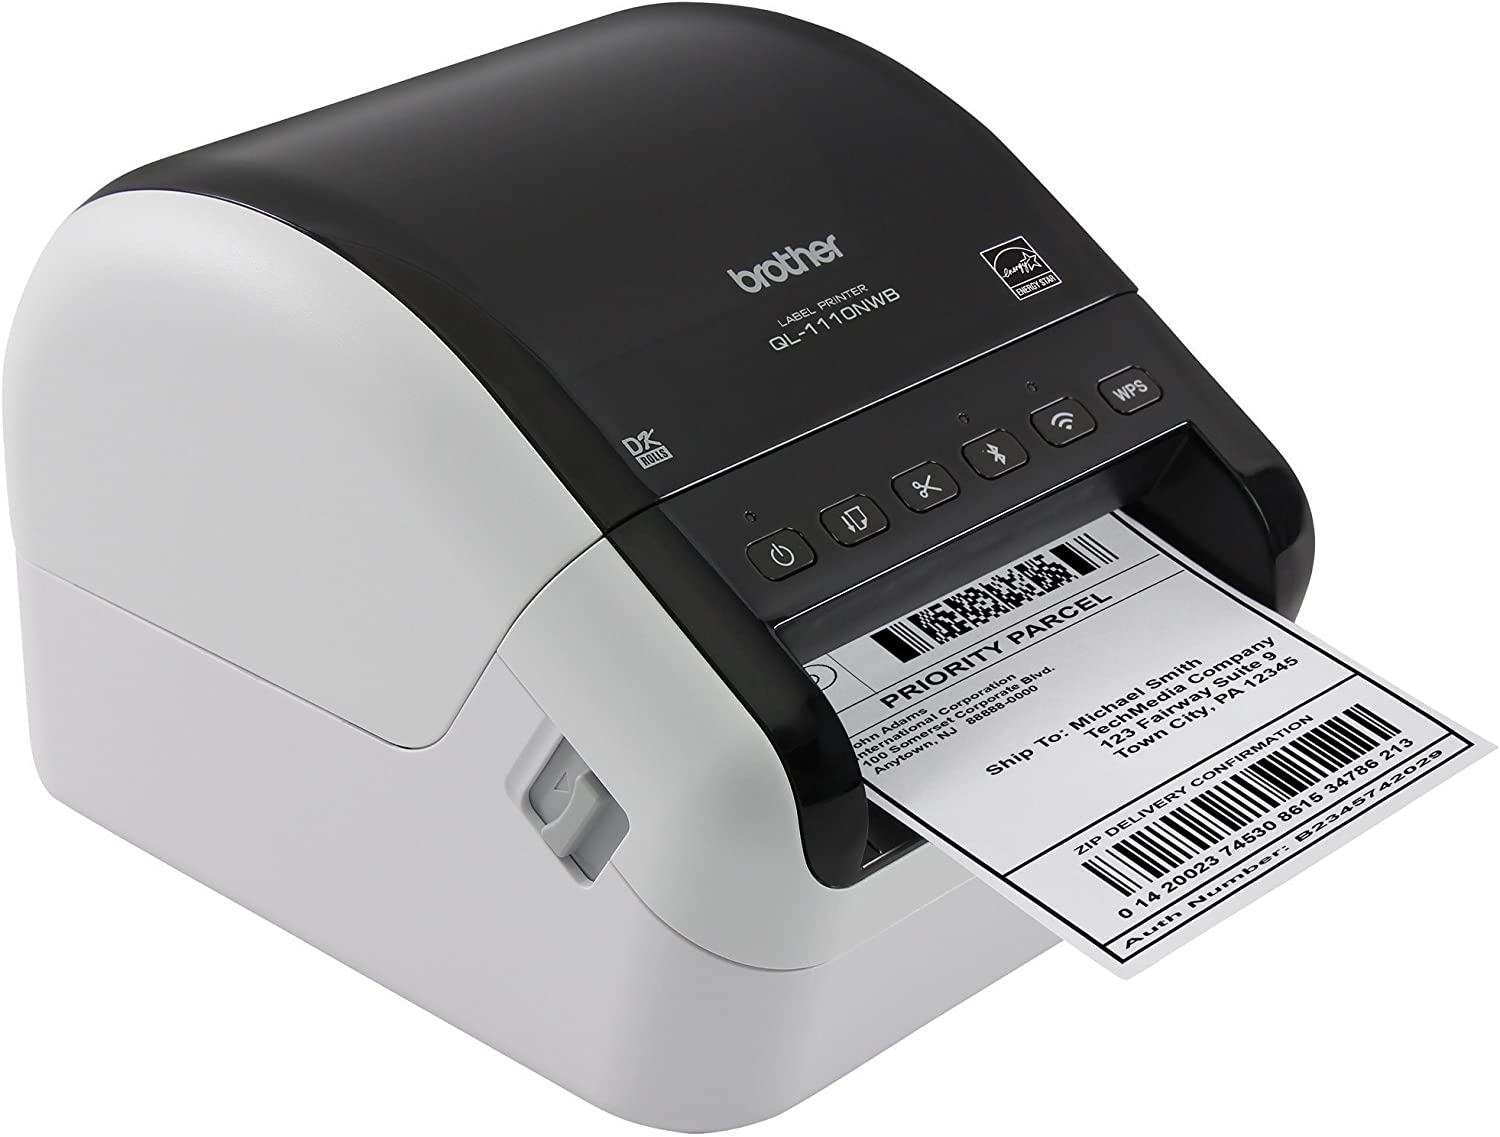 Amazon.com: Brother QL-1110NWB Impresora de etiquetas ...